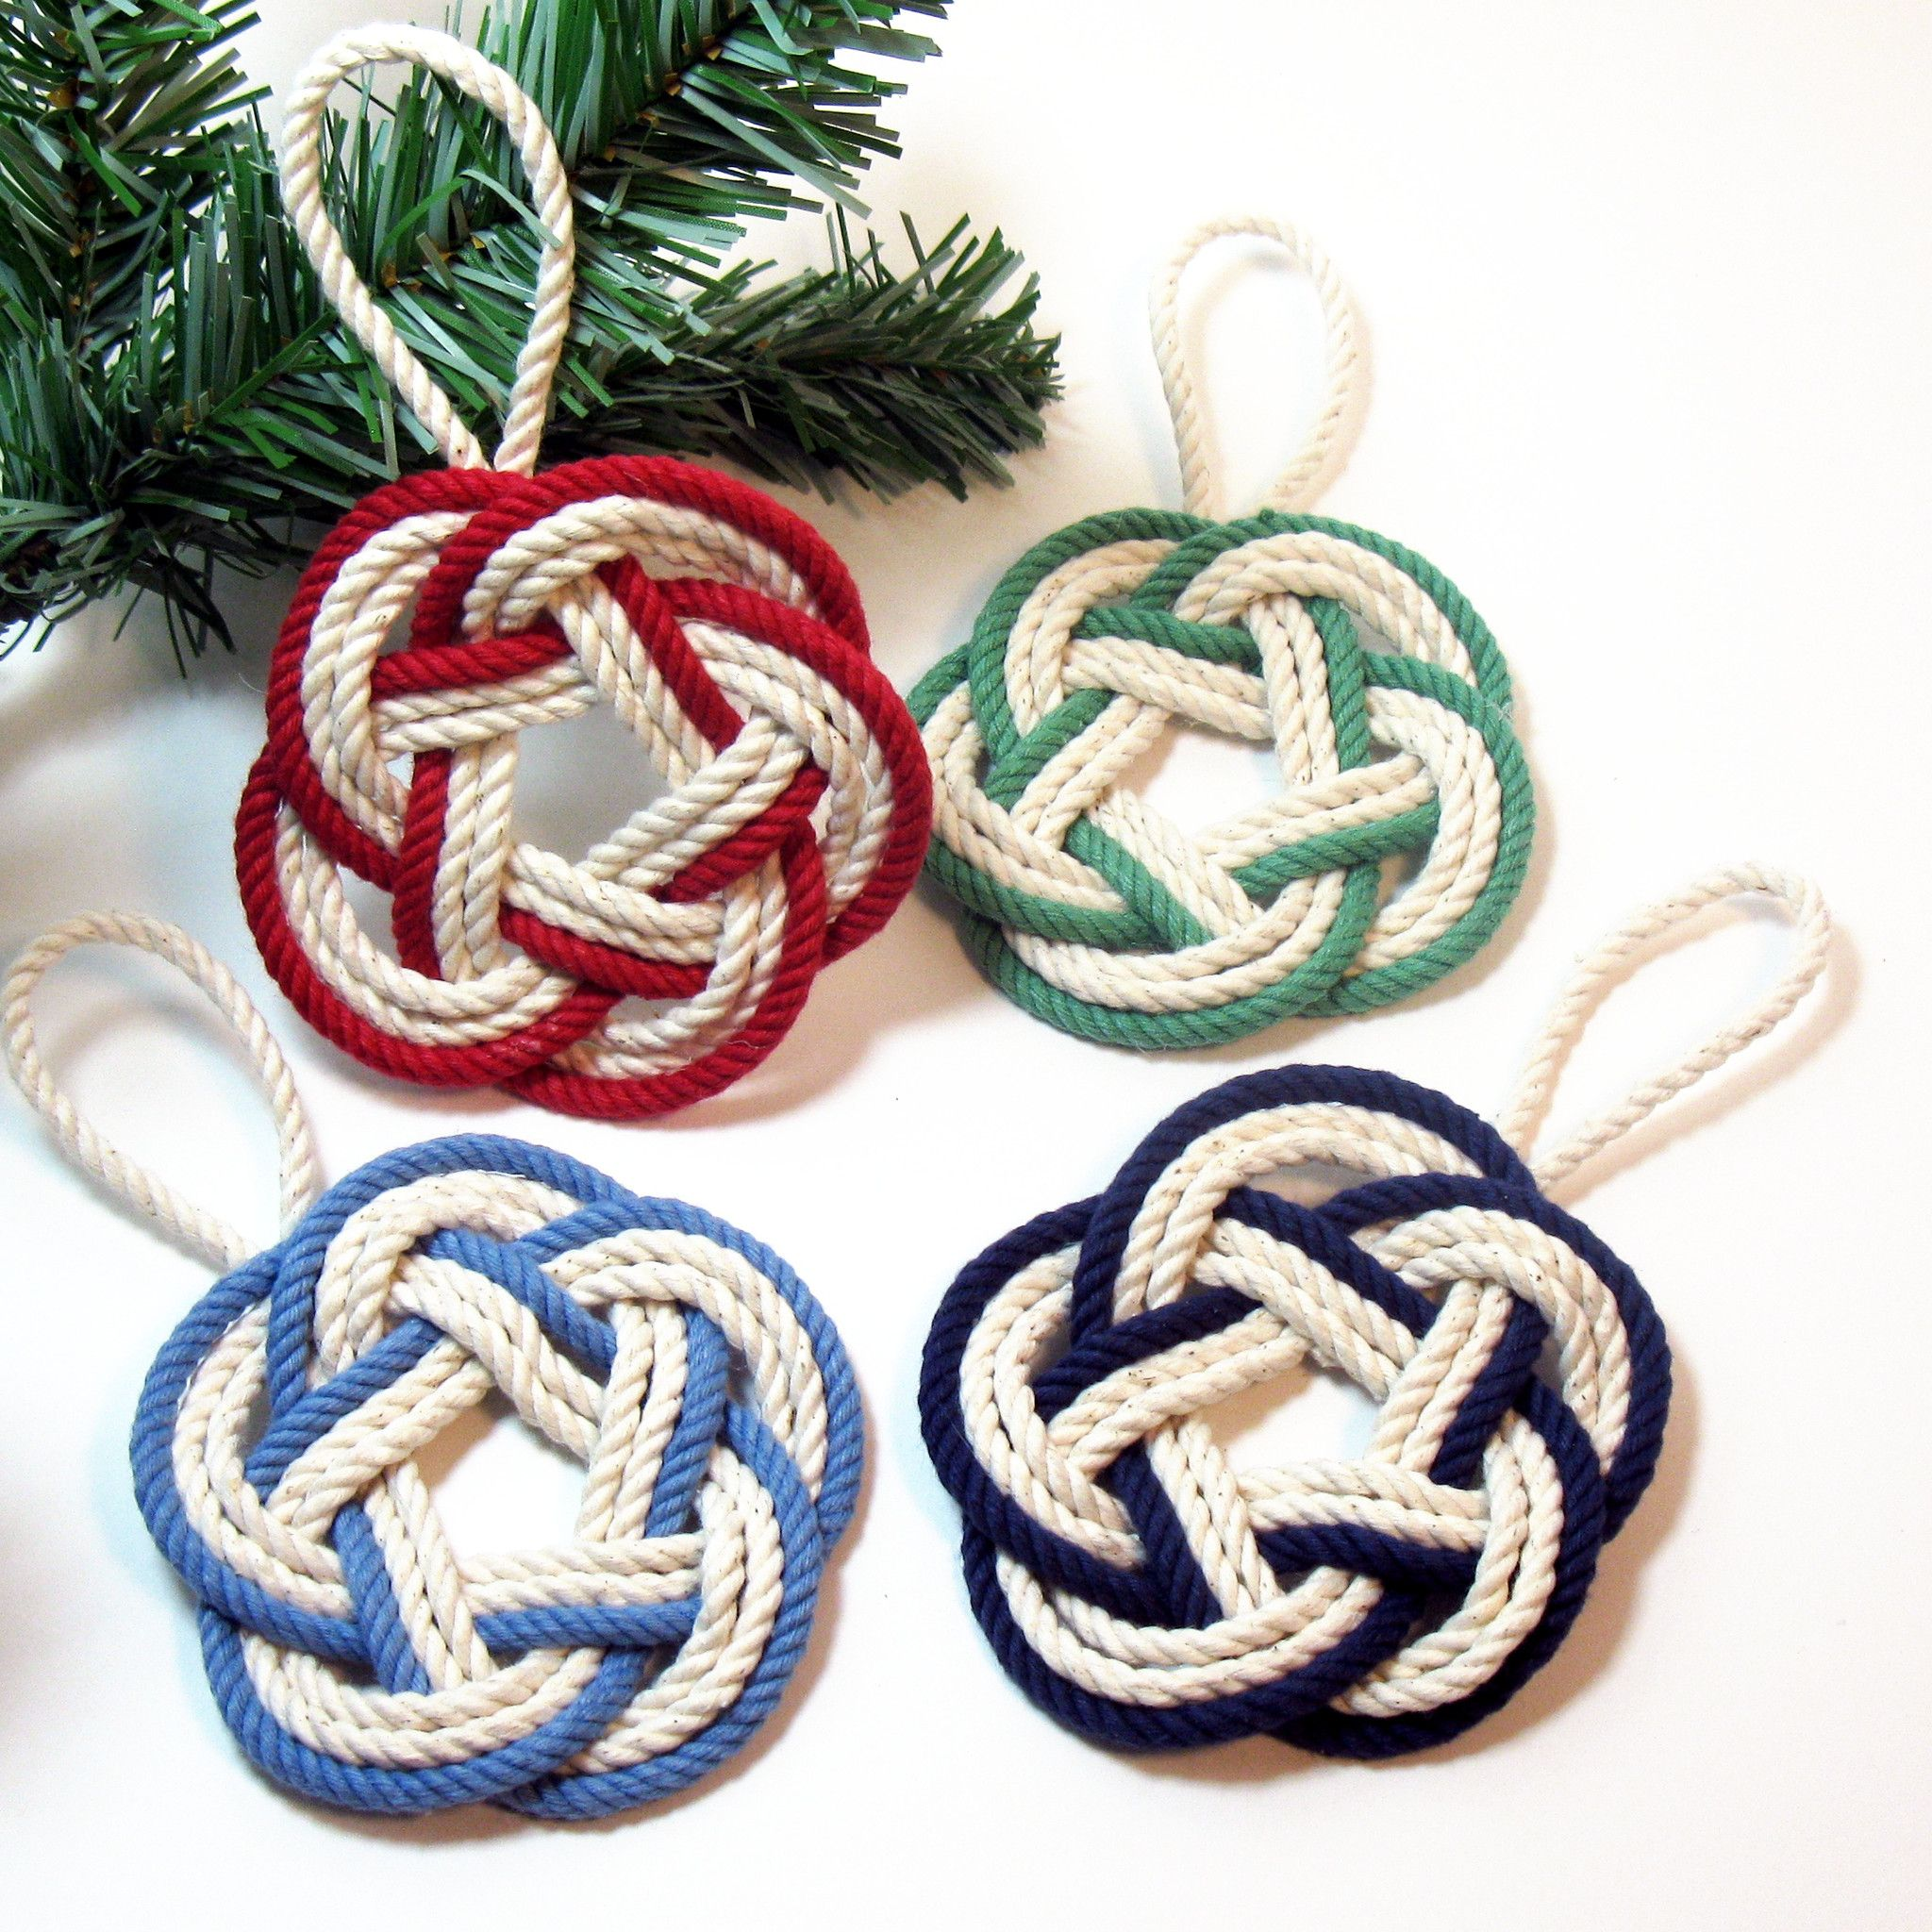 Cordage Marin Décoration Sailor Knot Christmas Ornament Striped Nautical Colors